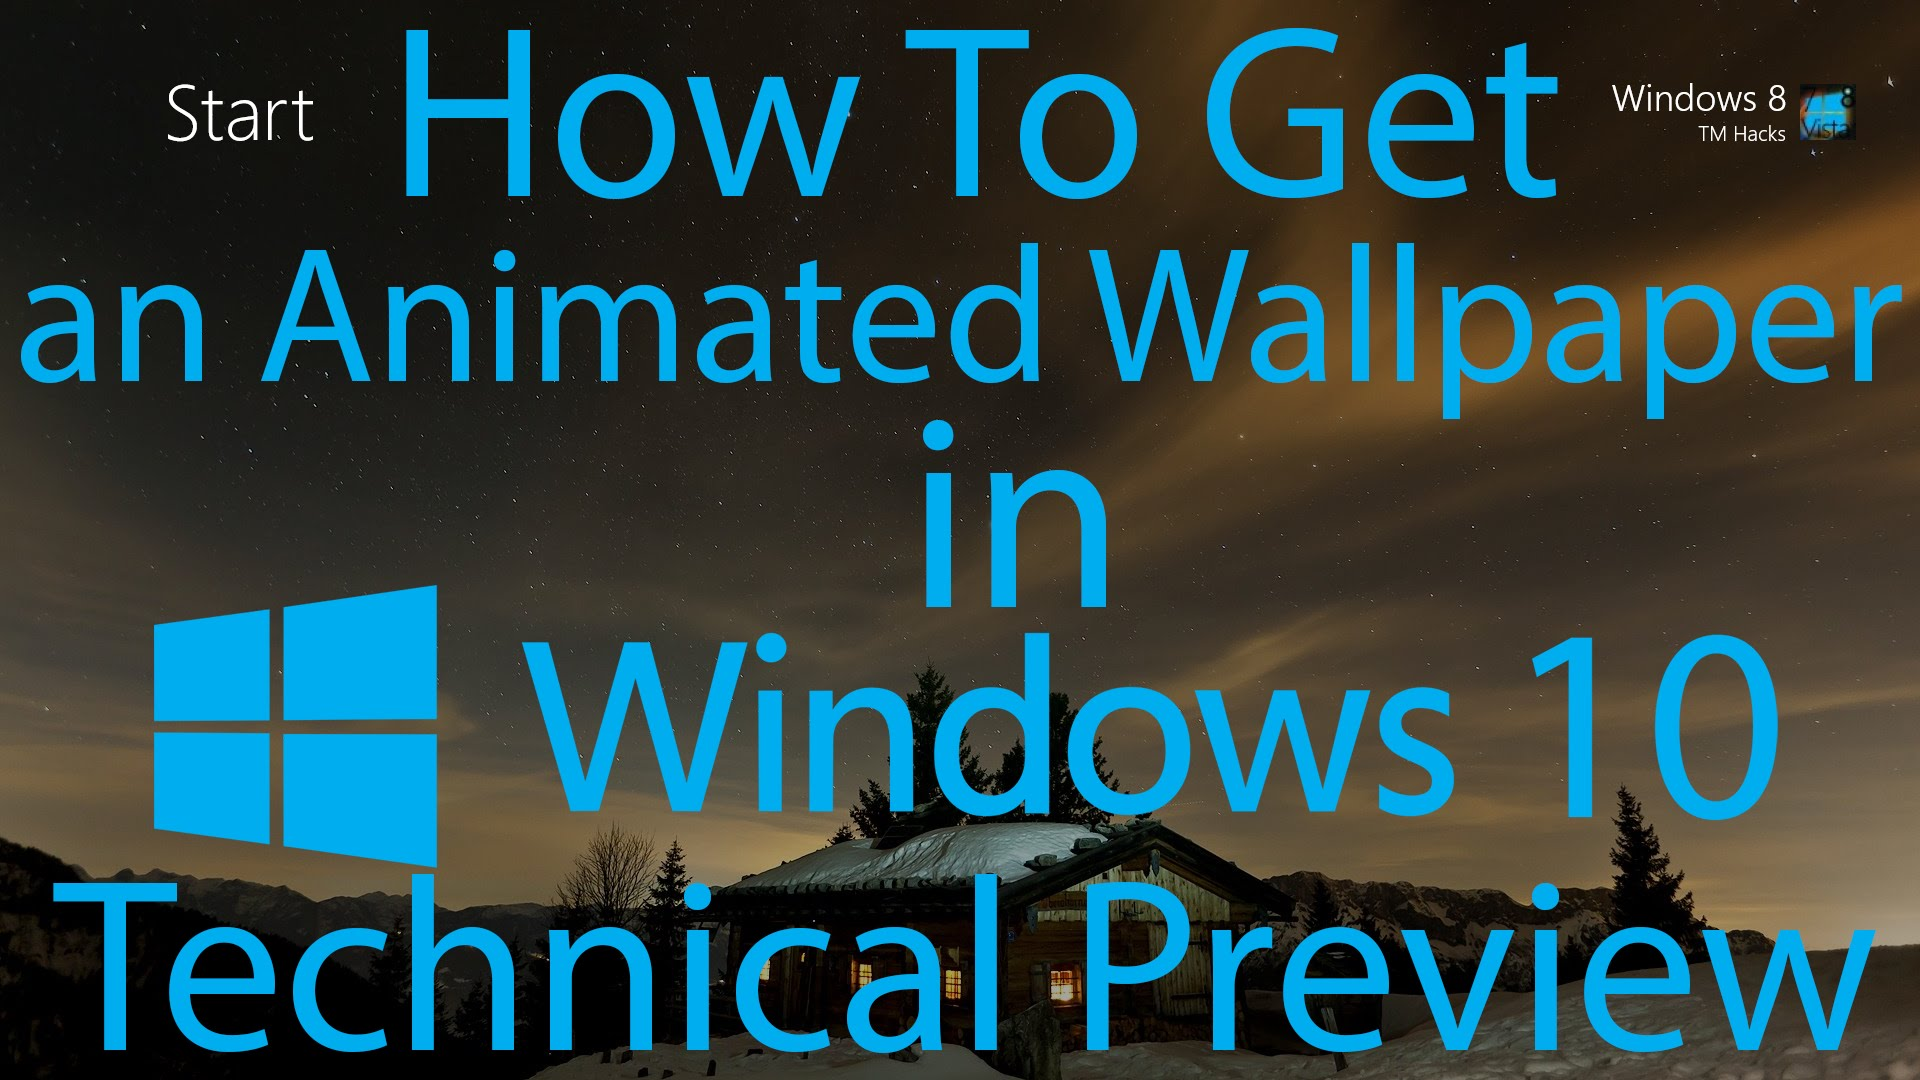 Have an Animated Wallpaper in Windows 10 Technical Preview 1920x1080